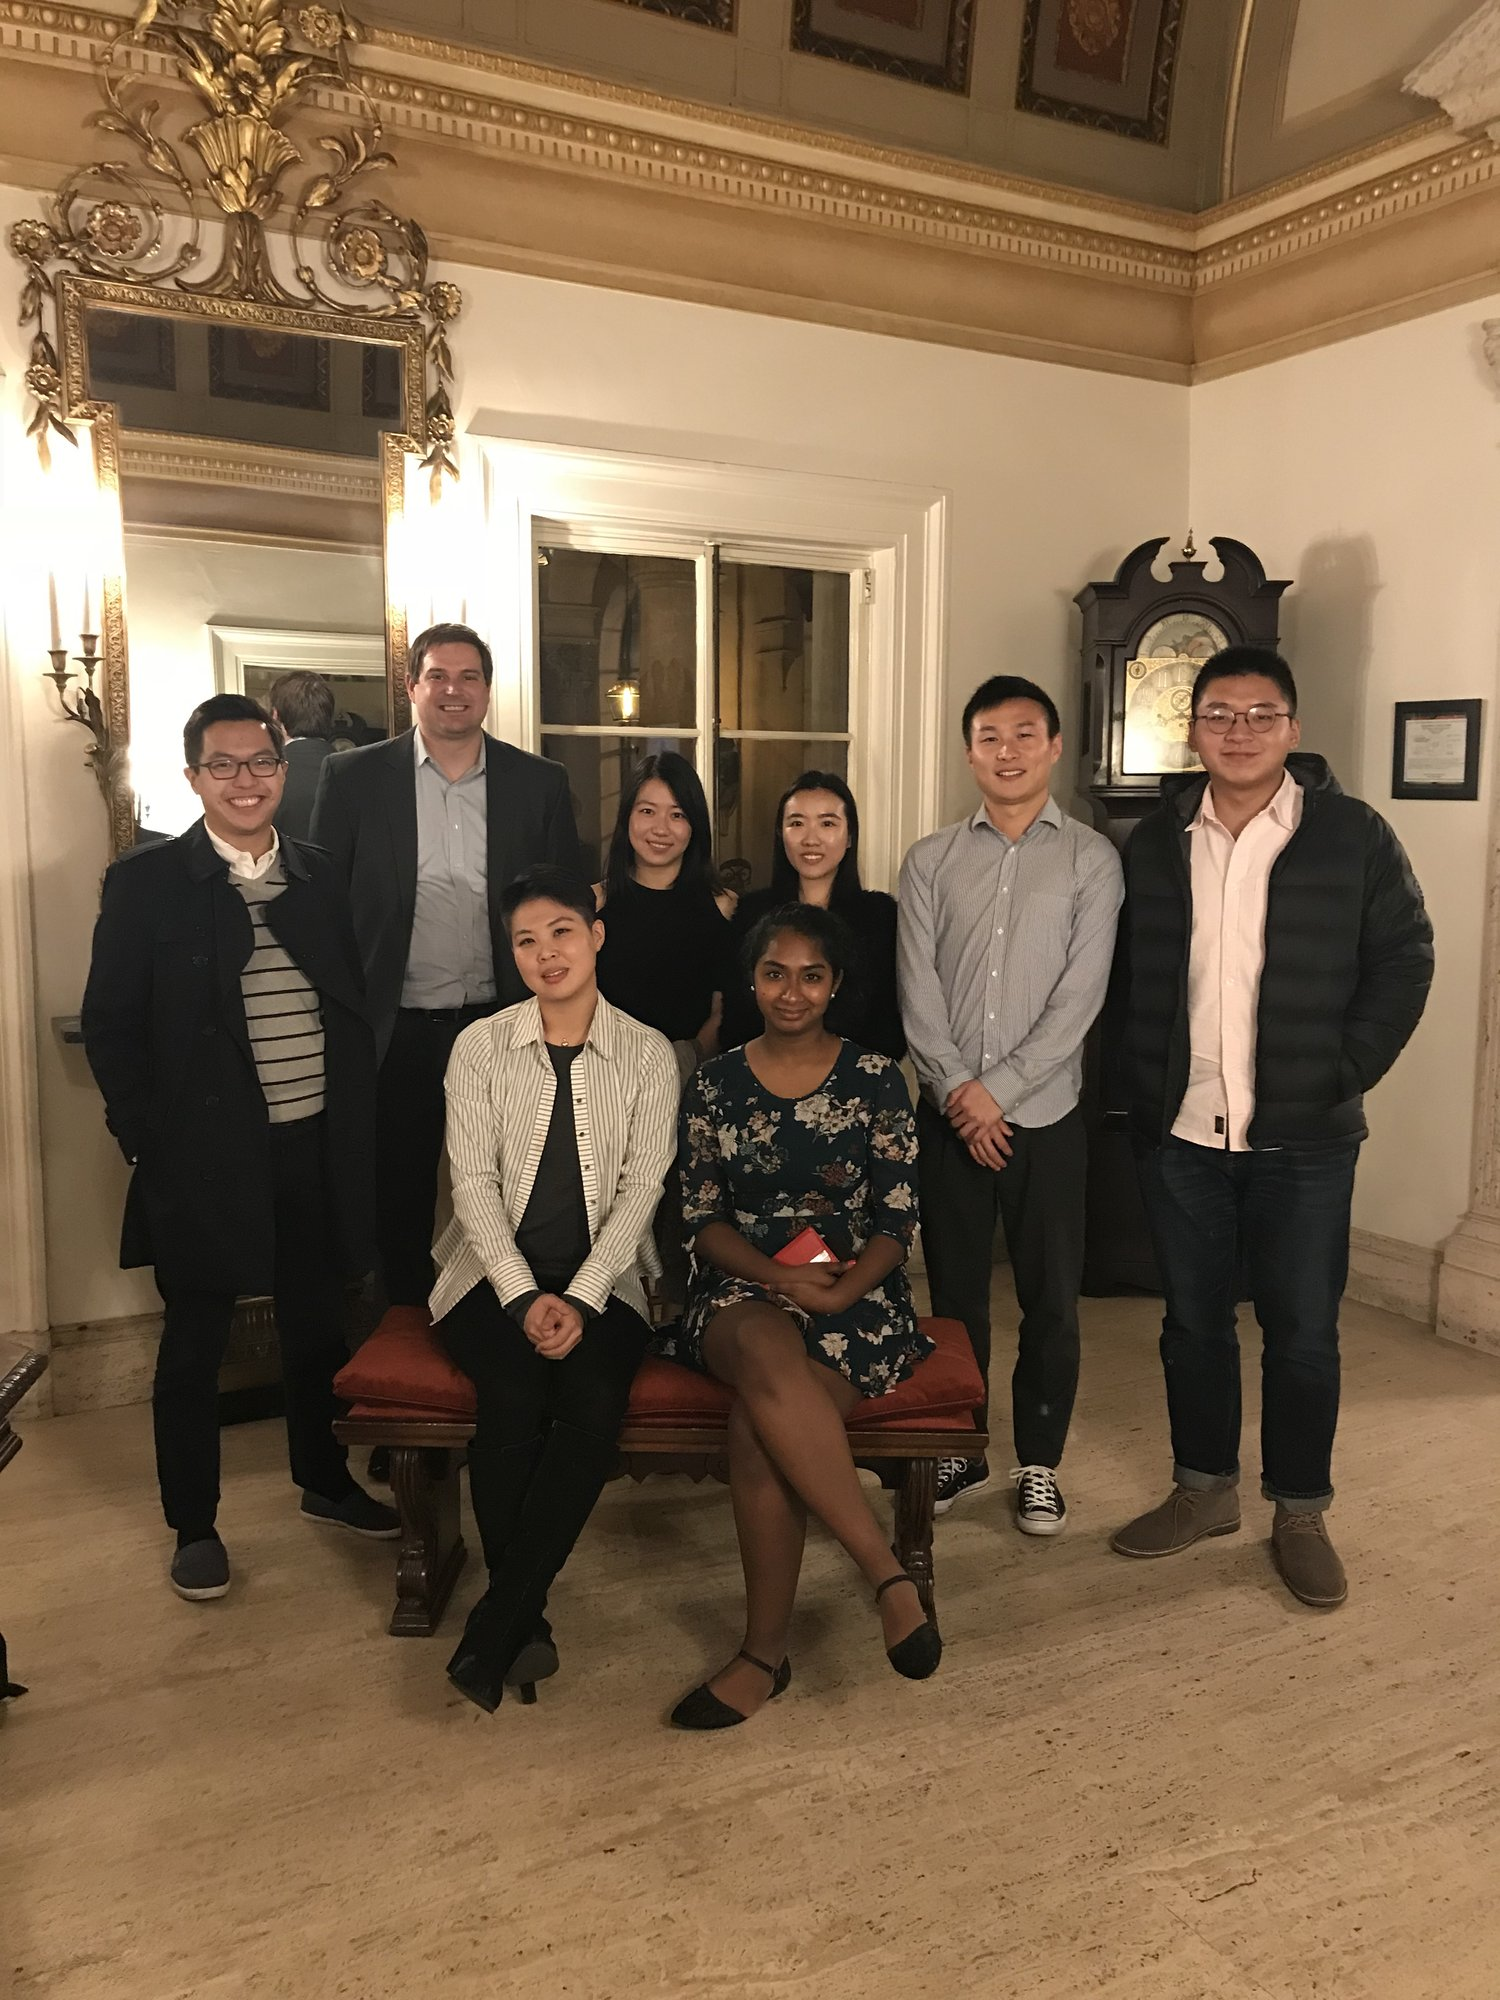 """Anthony Chong (BS '10) hosted 6 student students for a conversation over dinner about #LifeAfterCaltech. Thank you, Anthony for being one of the first #CaltechAlumni hosts of the CAA's """"Dinner with Techers"""" program!"""